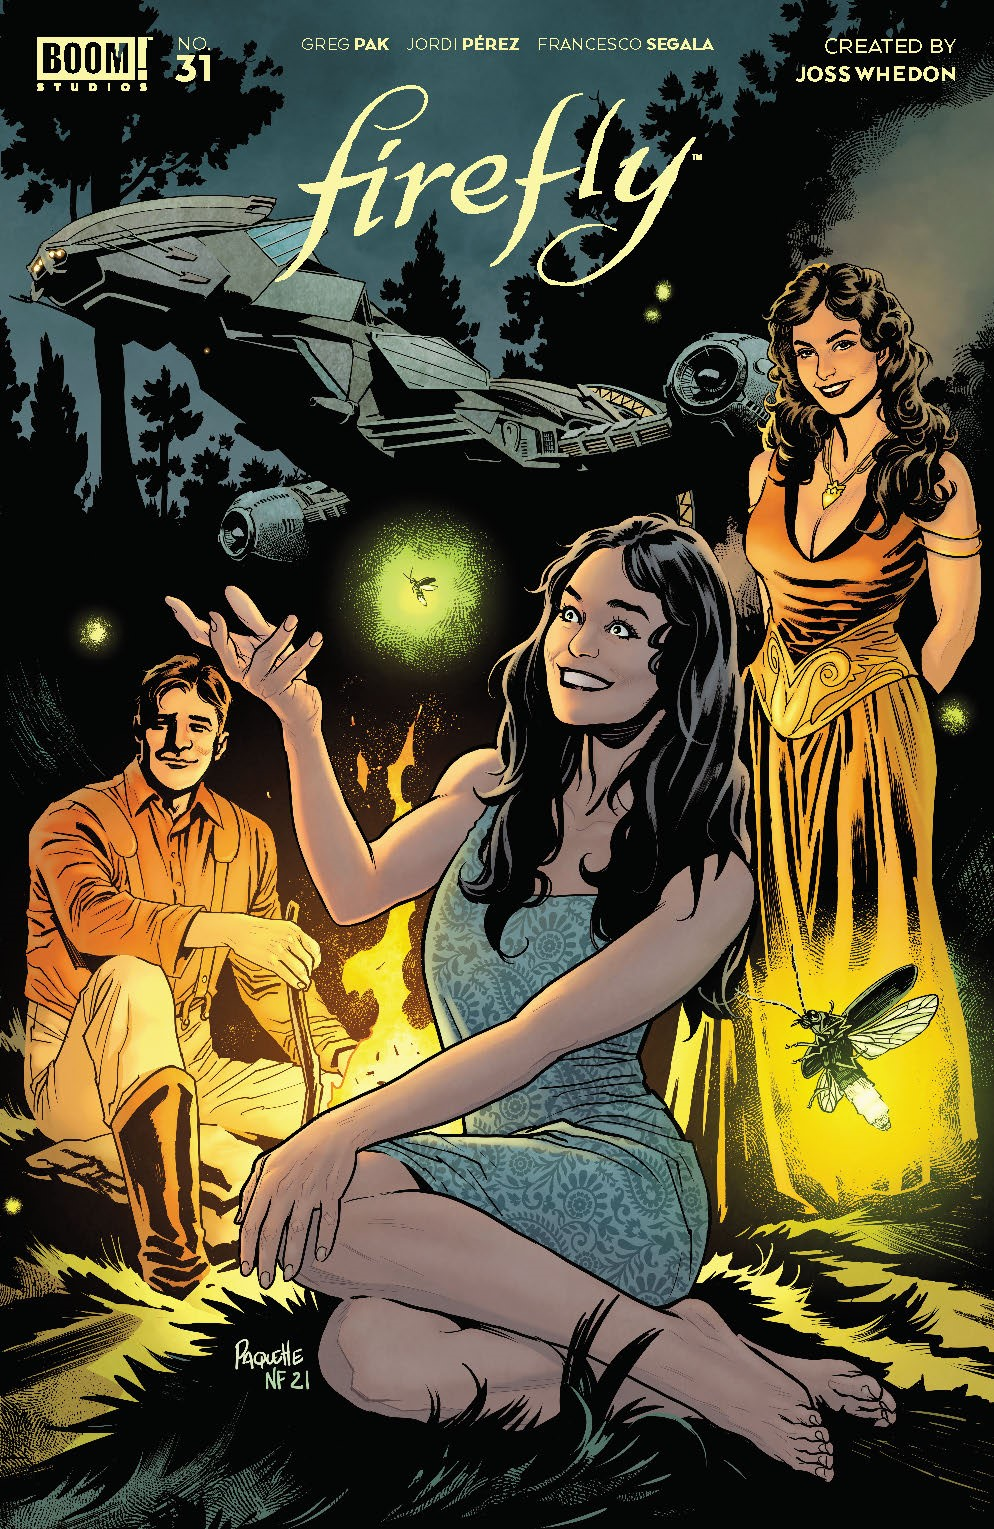 Firefly_031_Cover_B_Variant ComicList Previews: FIREFLY #31